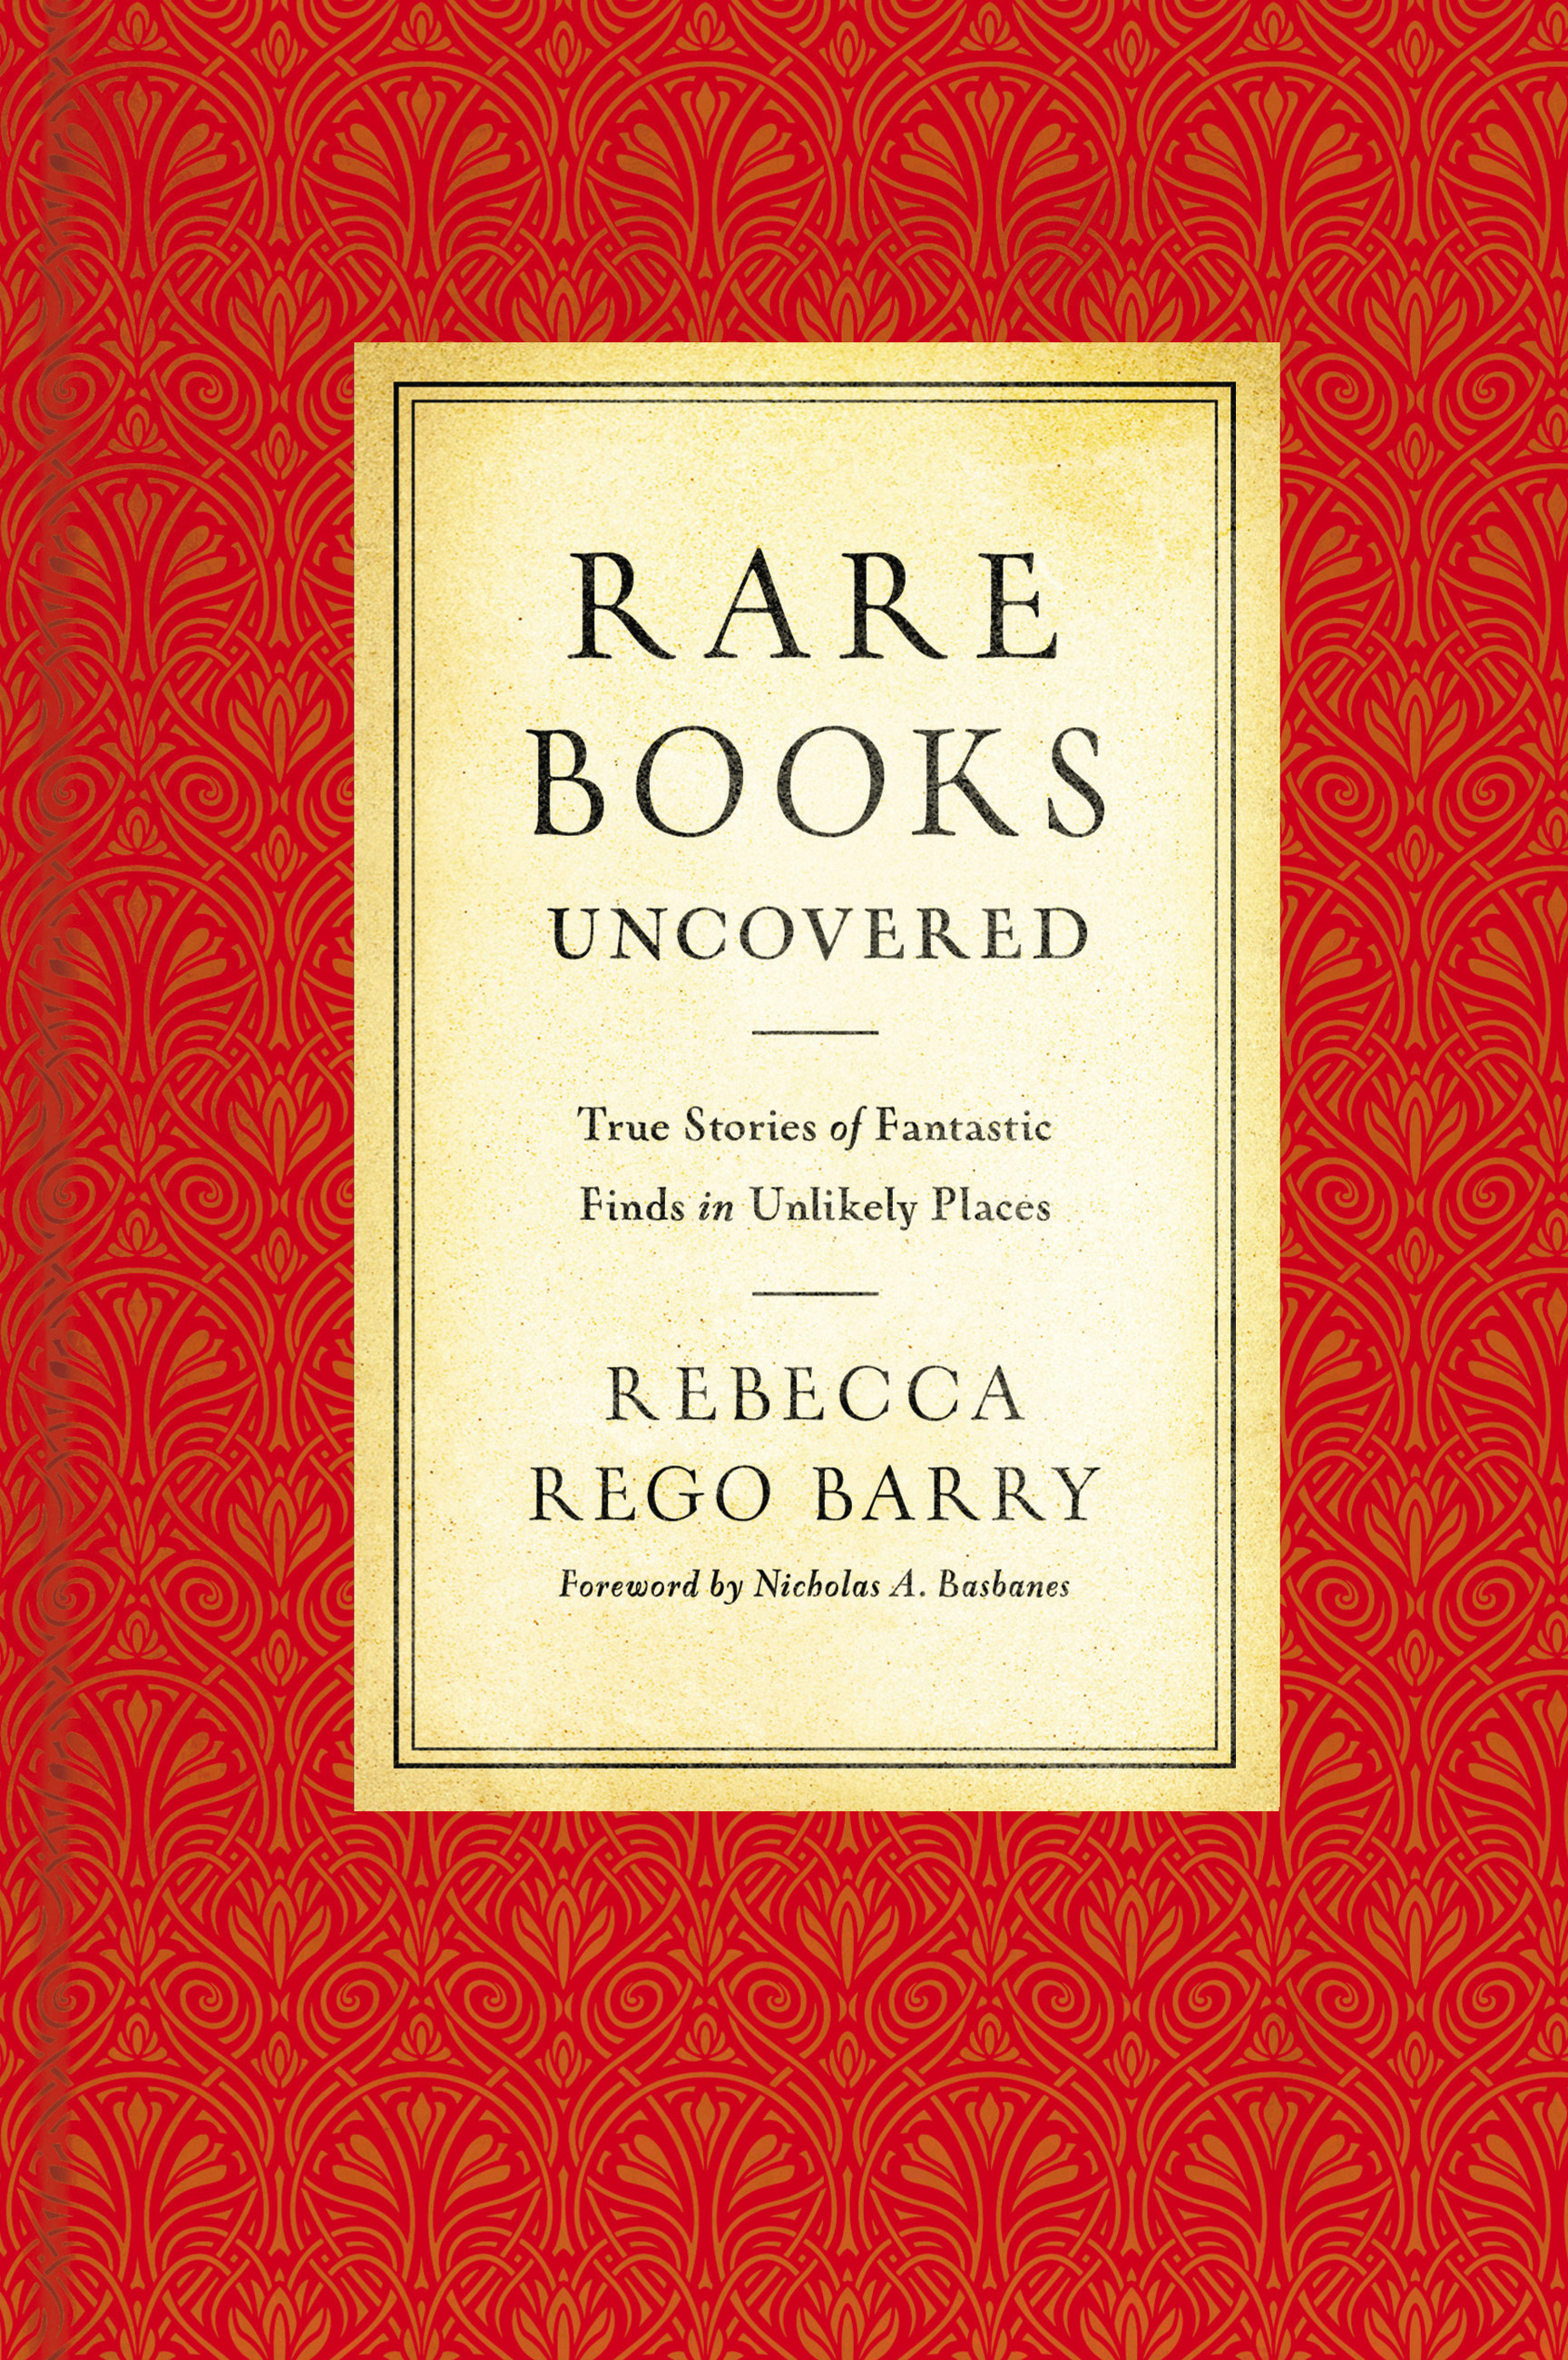 Rare Books Uncovered: True Stories of Fantastic Finds in Unlikely Places